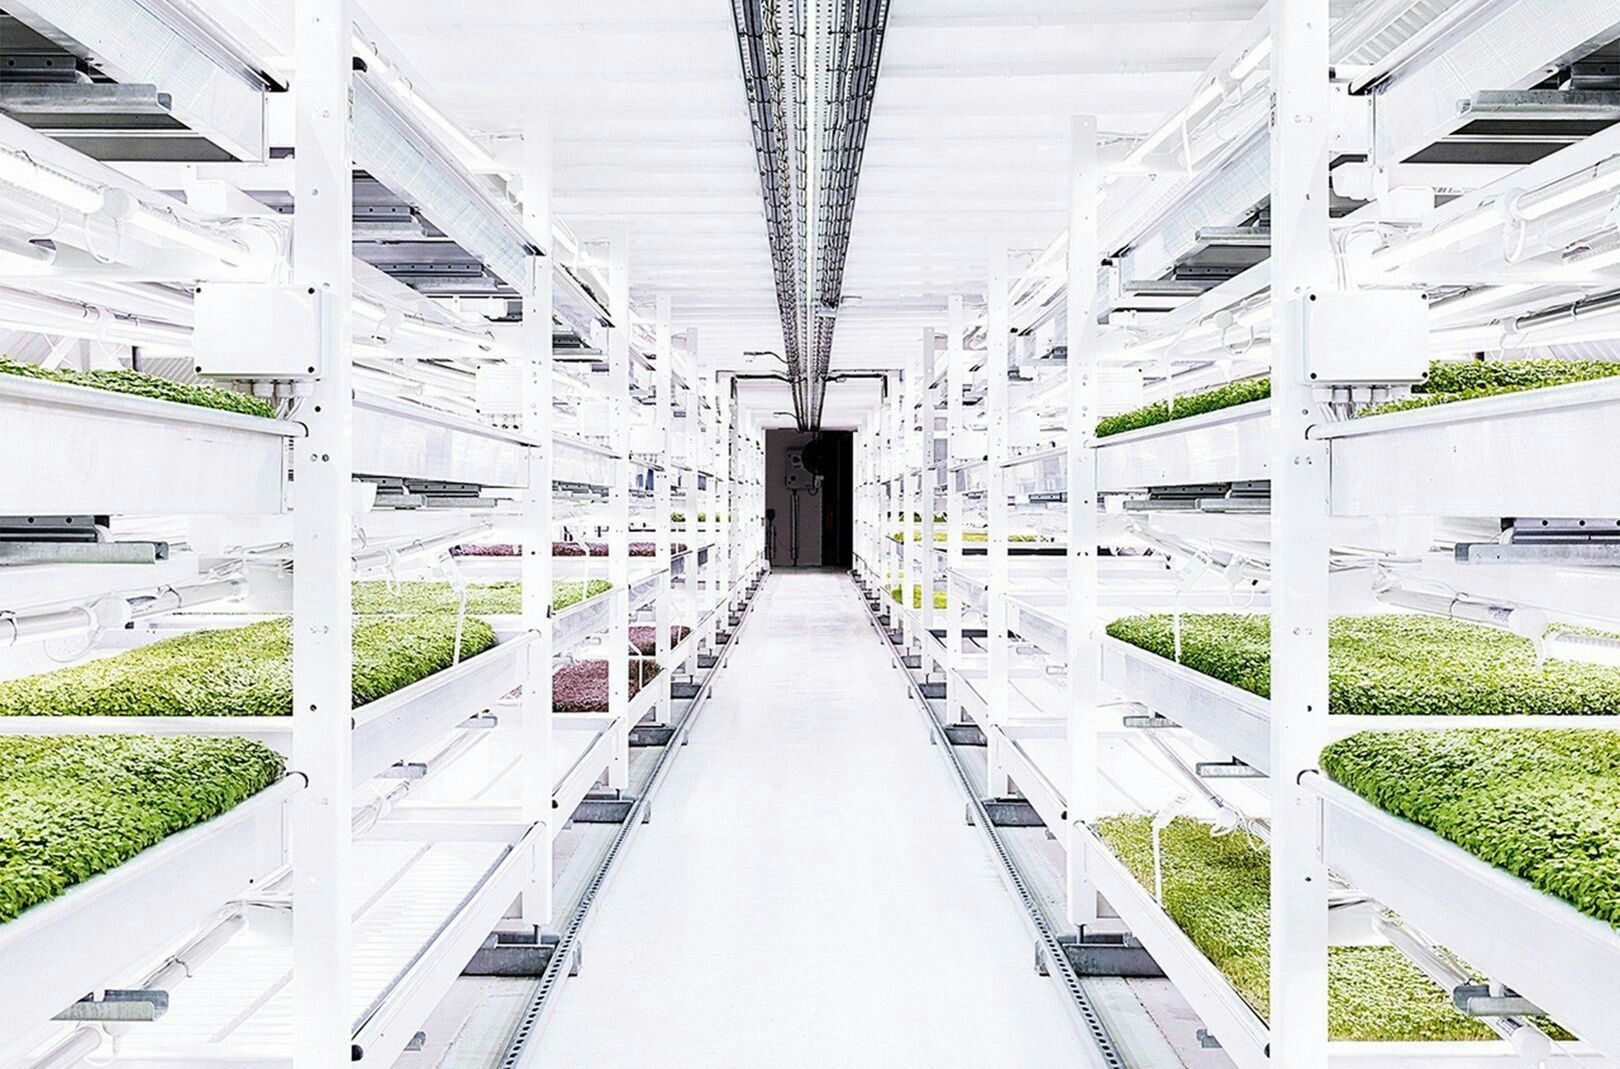 http://www.wired.co.uk/article/underground-hydroponic-farm | d!D ...